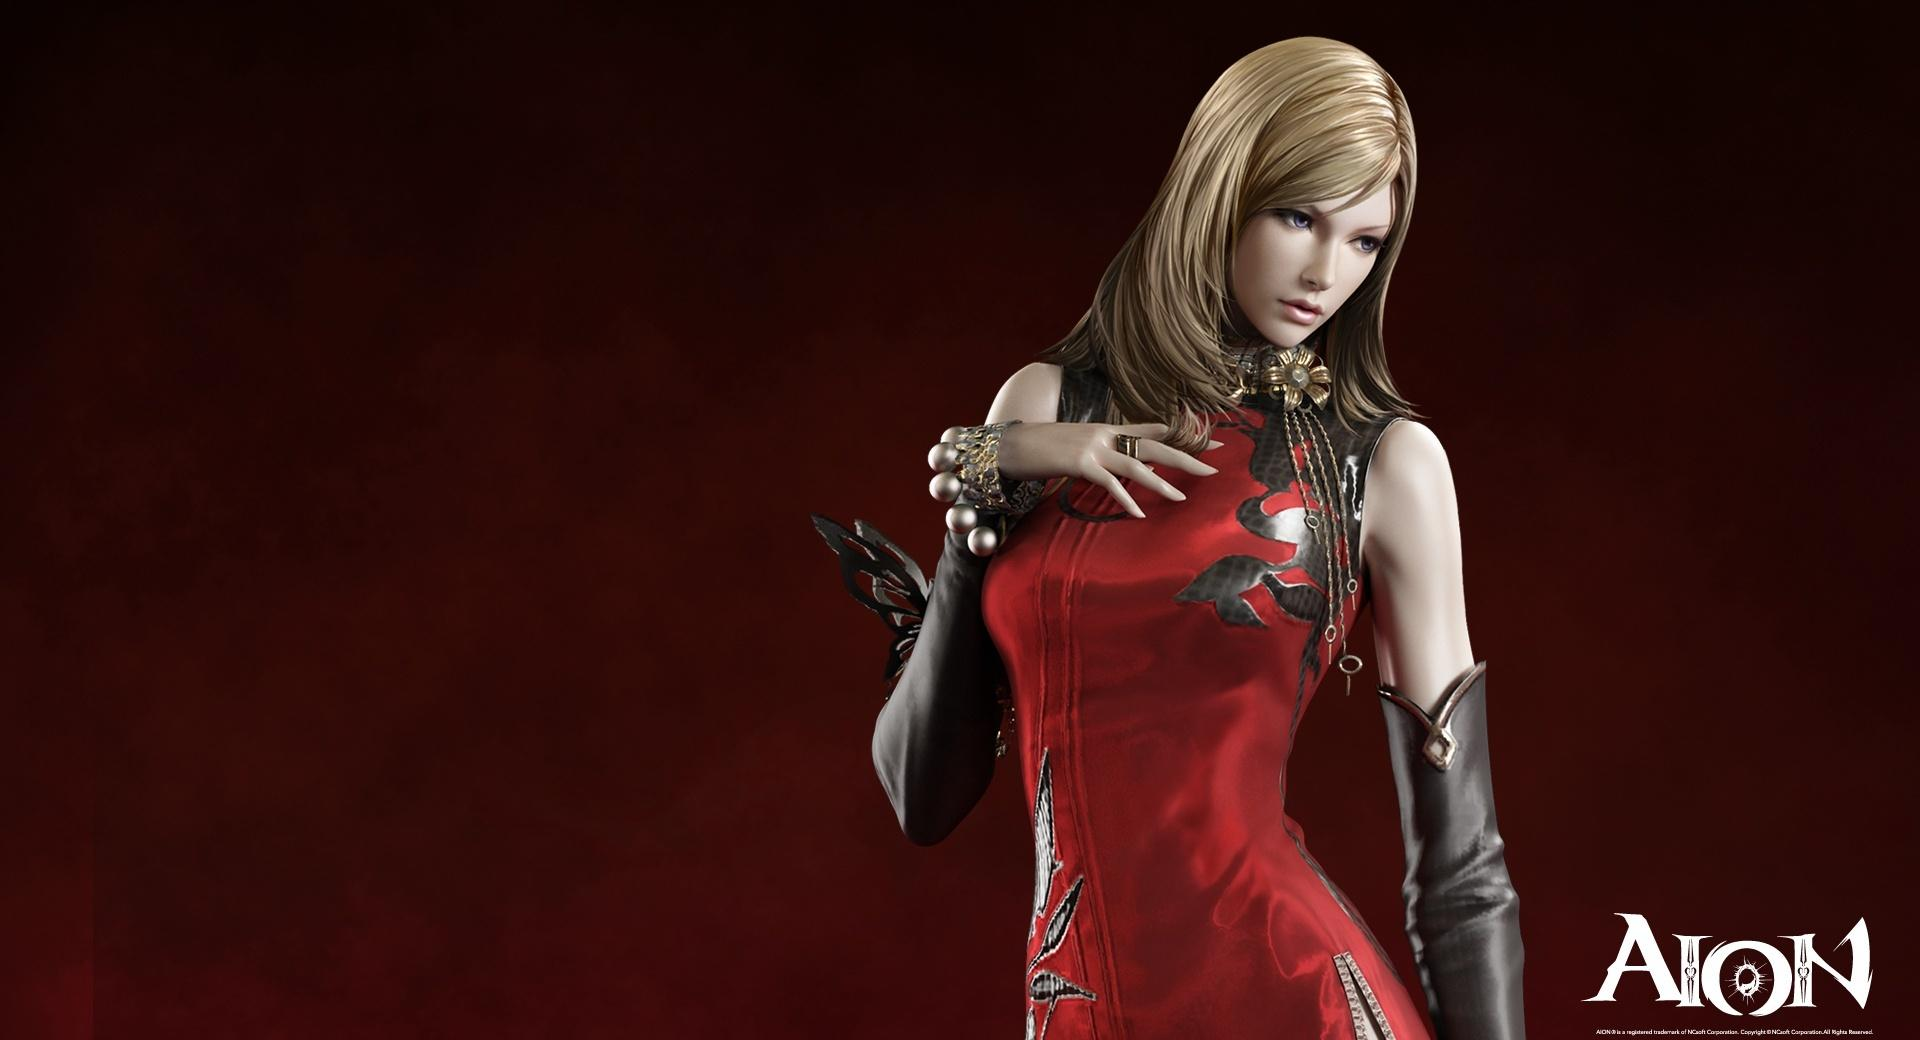 Aion Beautiful Girl wallpapers HD quality